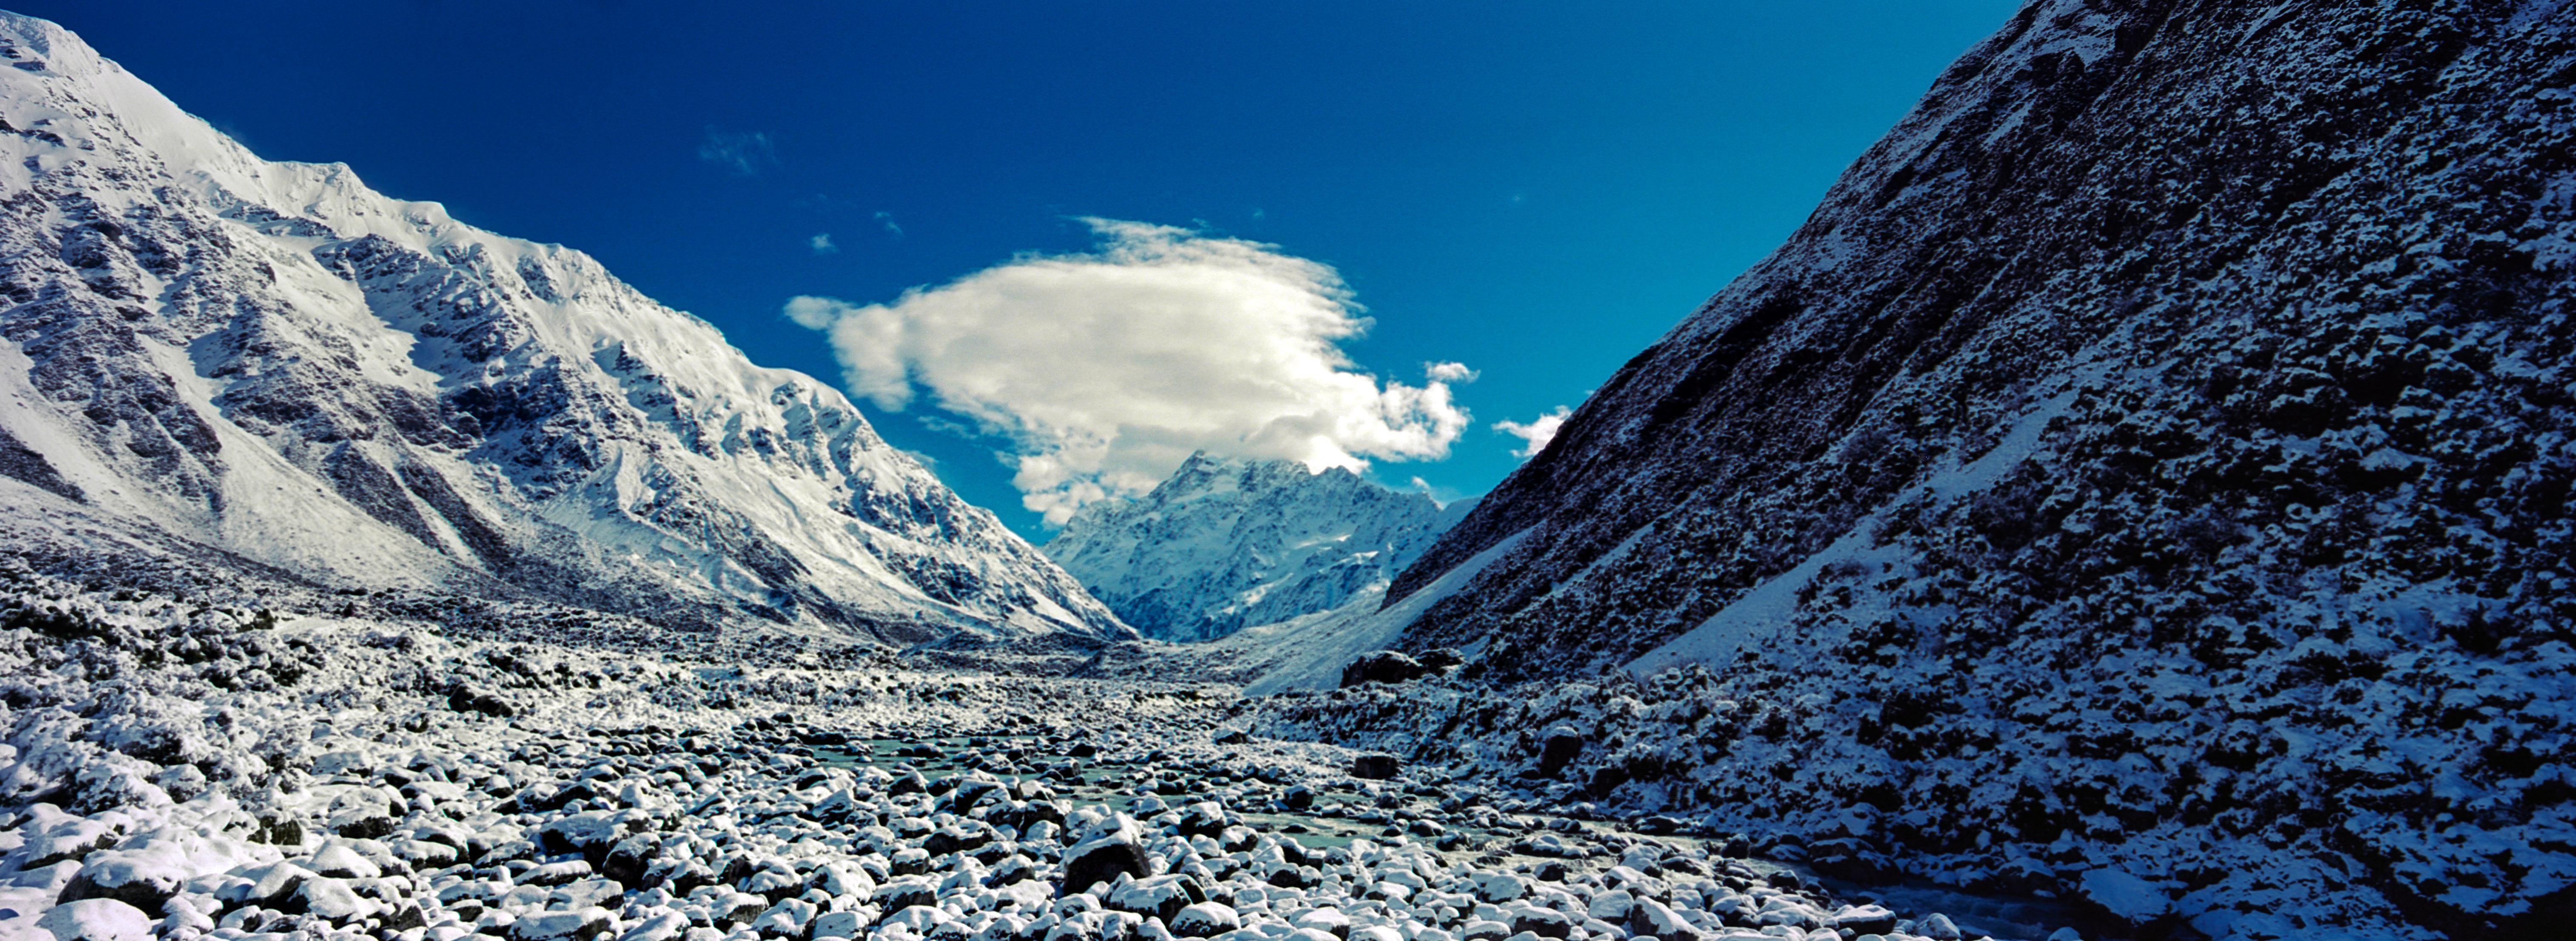 Hooker Valley, Aoraki / Mt. Cook National Park, Canterbury, South Island